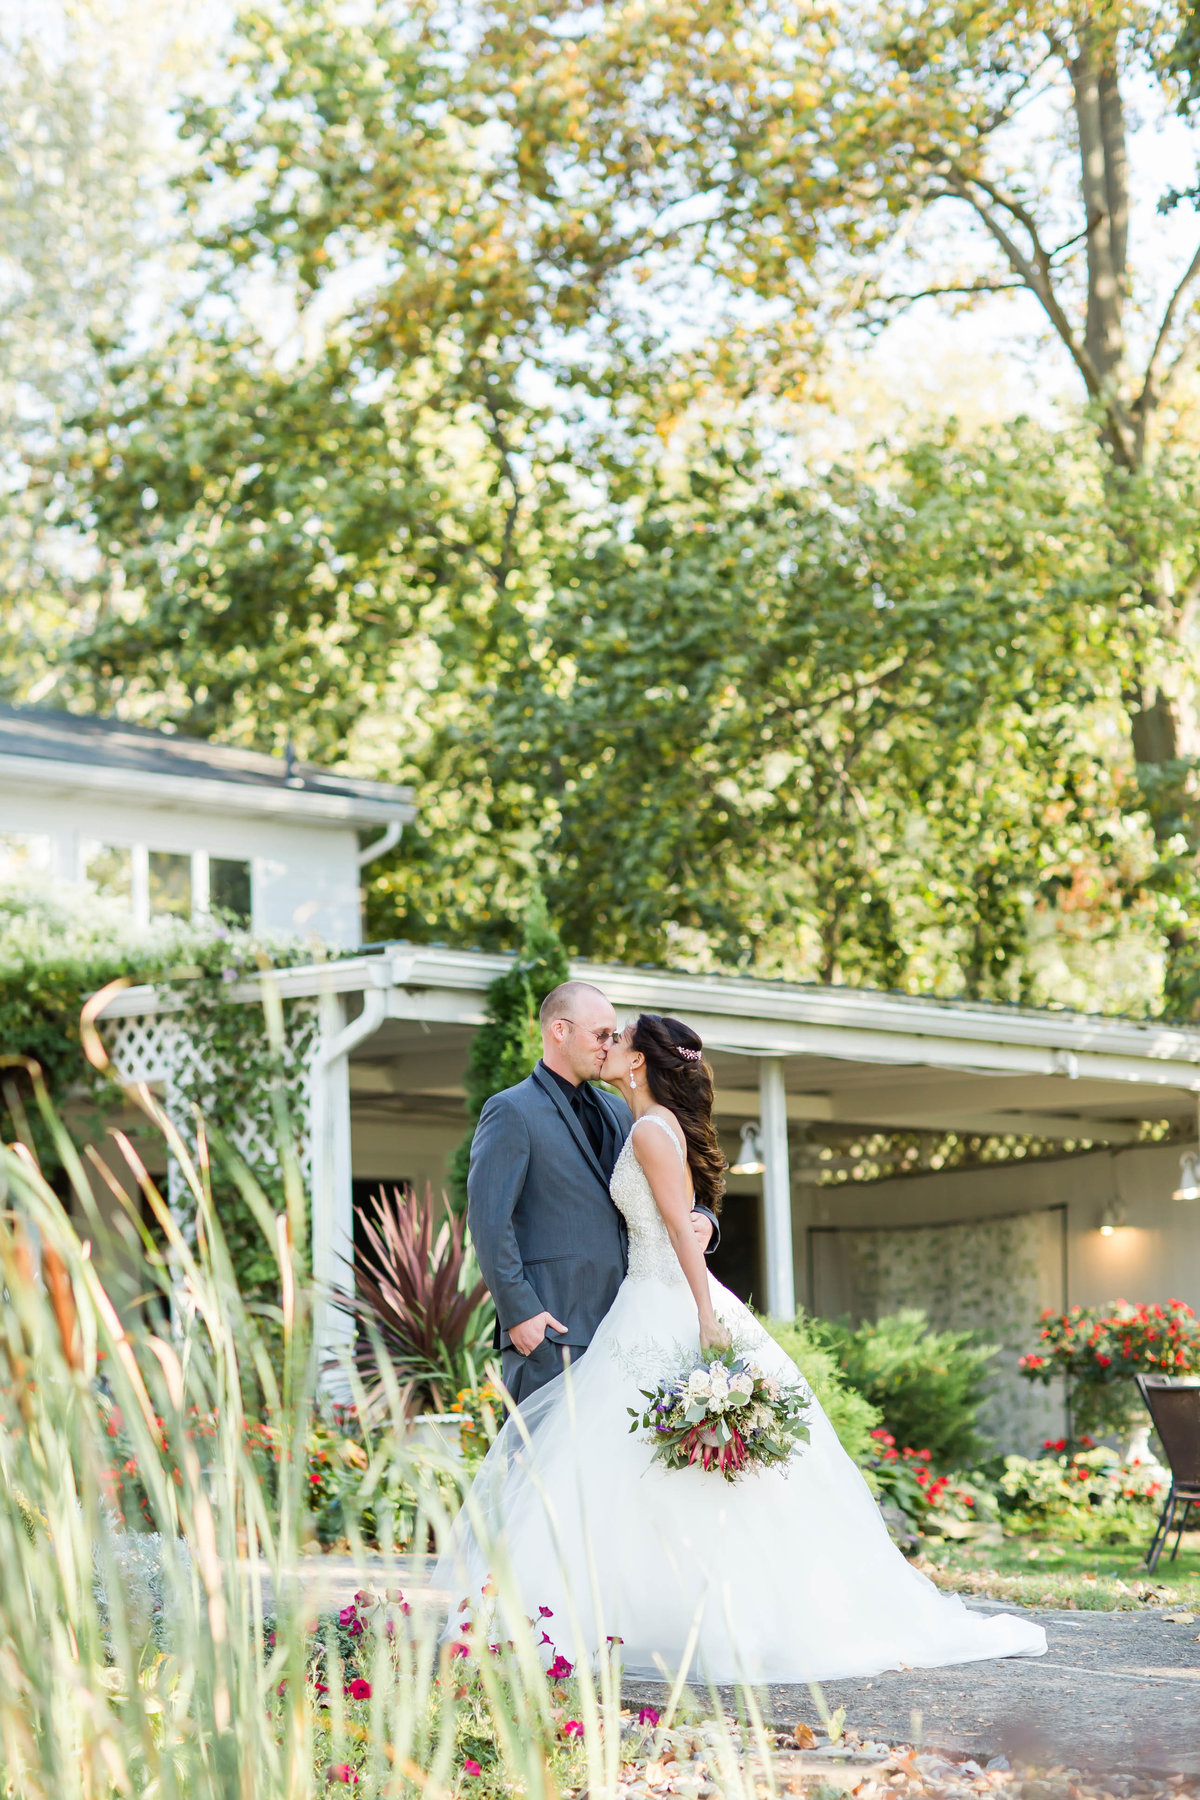 oaks-lakeside-ohio-wedding-loren-jackson-photography-54